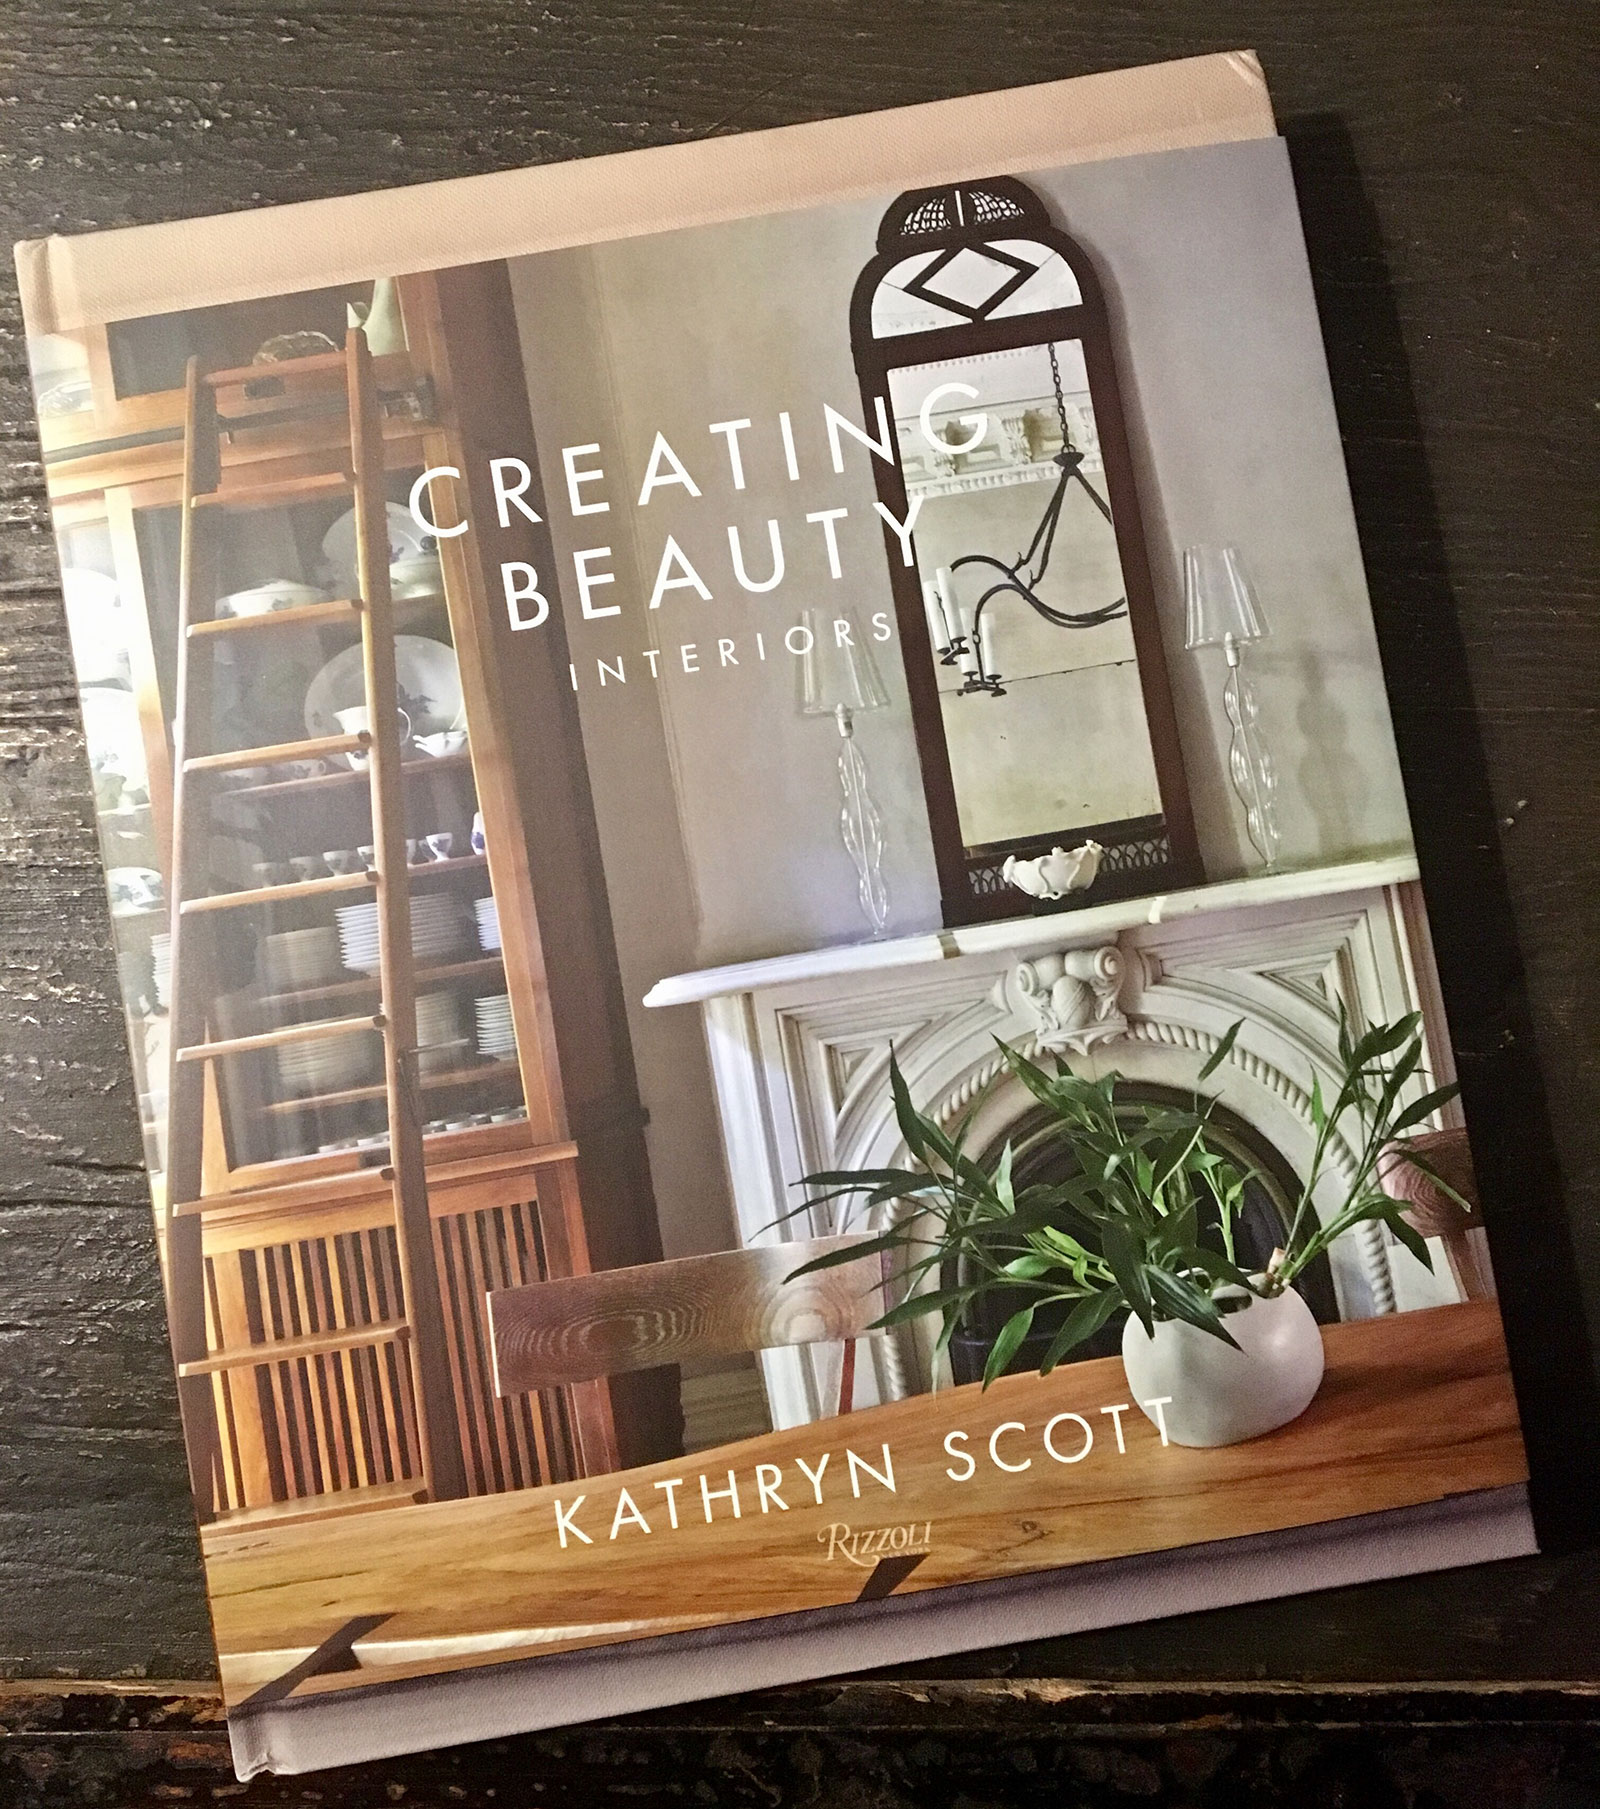 Creating Beauty: Interiors by Kathryn Scott